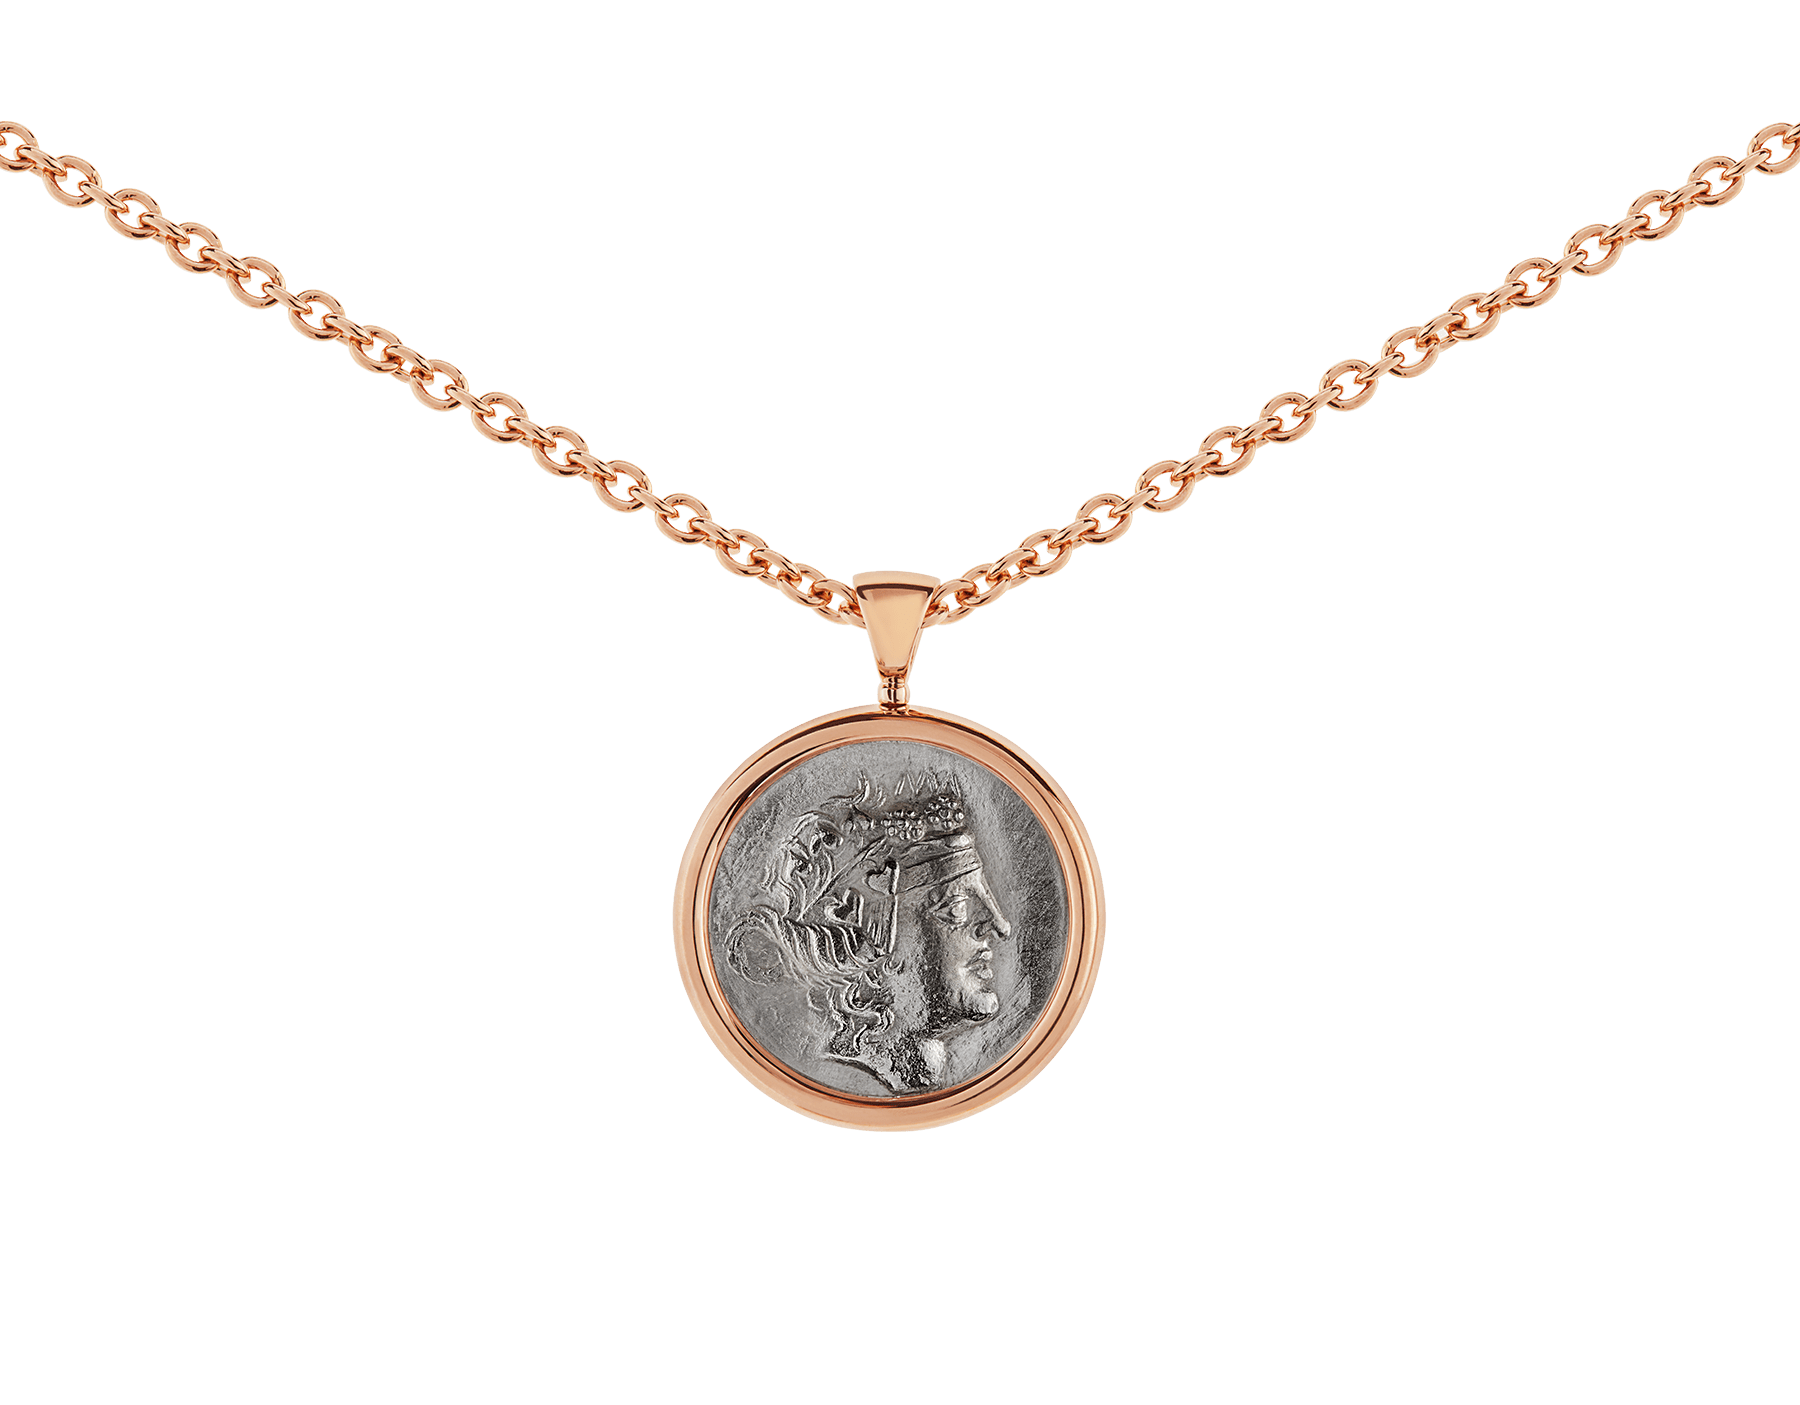 Monete necklace with 18 kt rose gold chain and 18 kt rose gold pendant set with an antique coin 347707 image 3